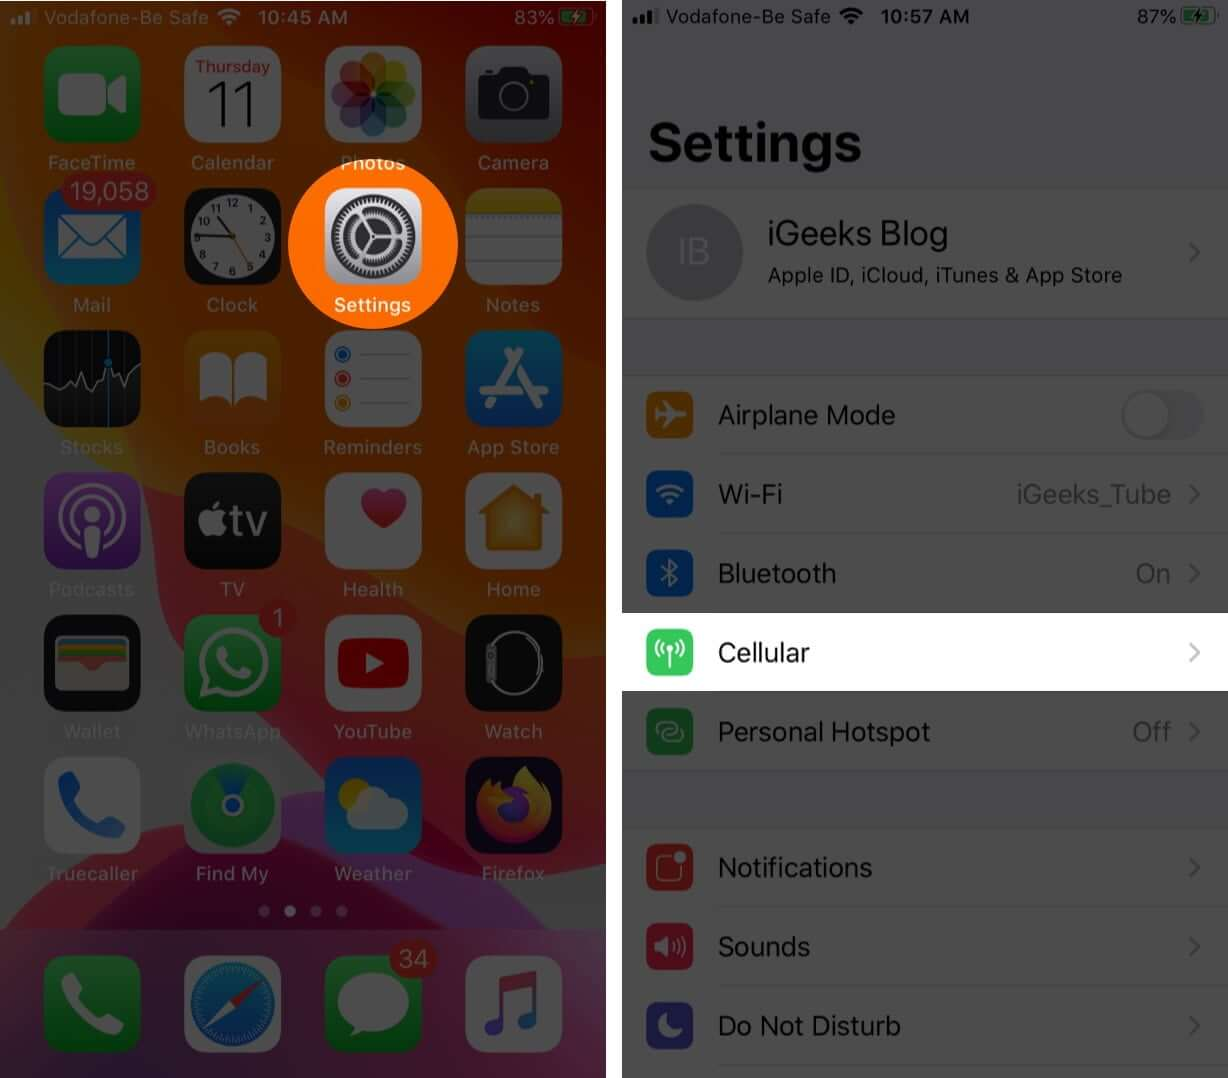 open settings and tap cellular on iphone